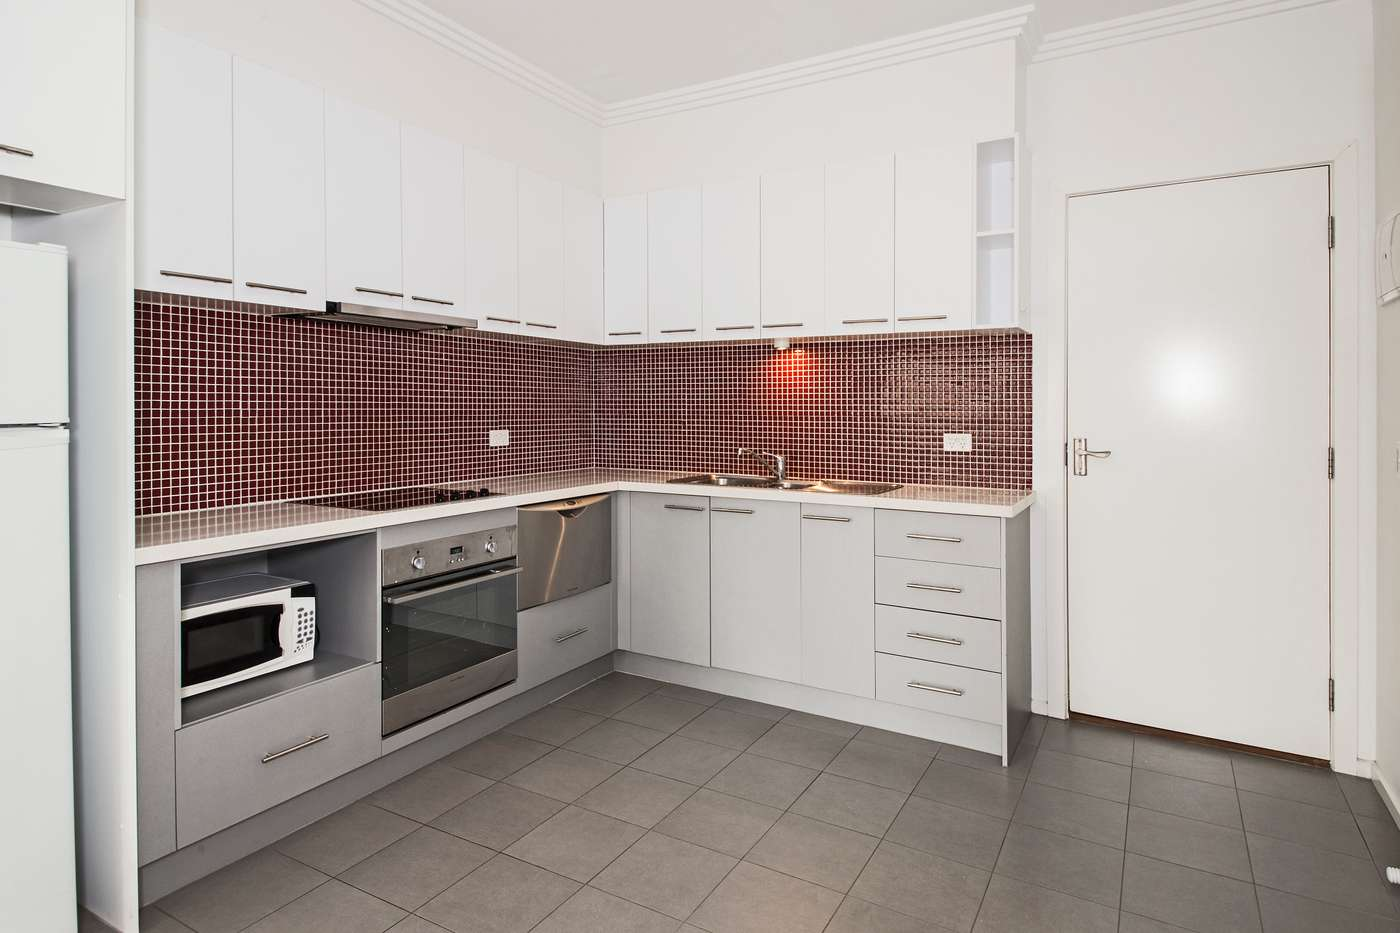 Main view of Homely apartment listing, 173/115 Neerim Road, Glen Huntly, VIC 3163